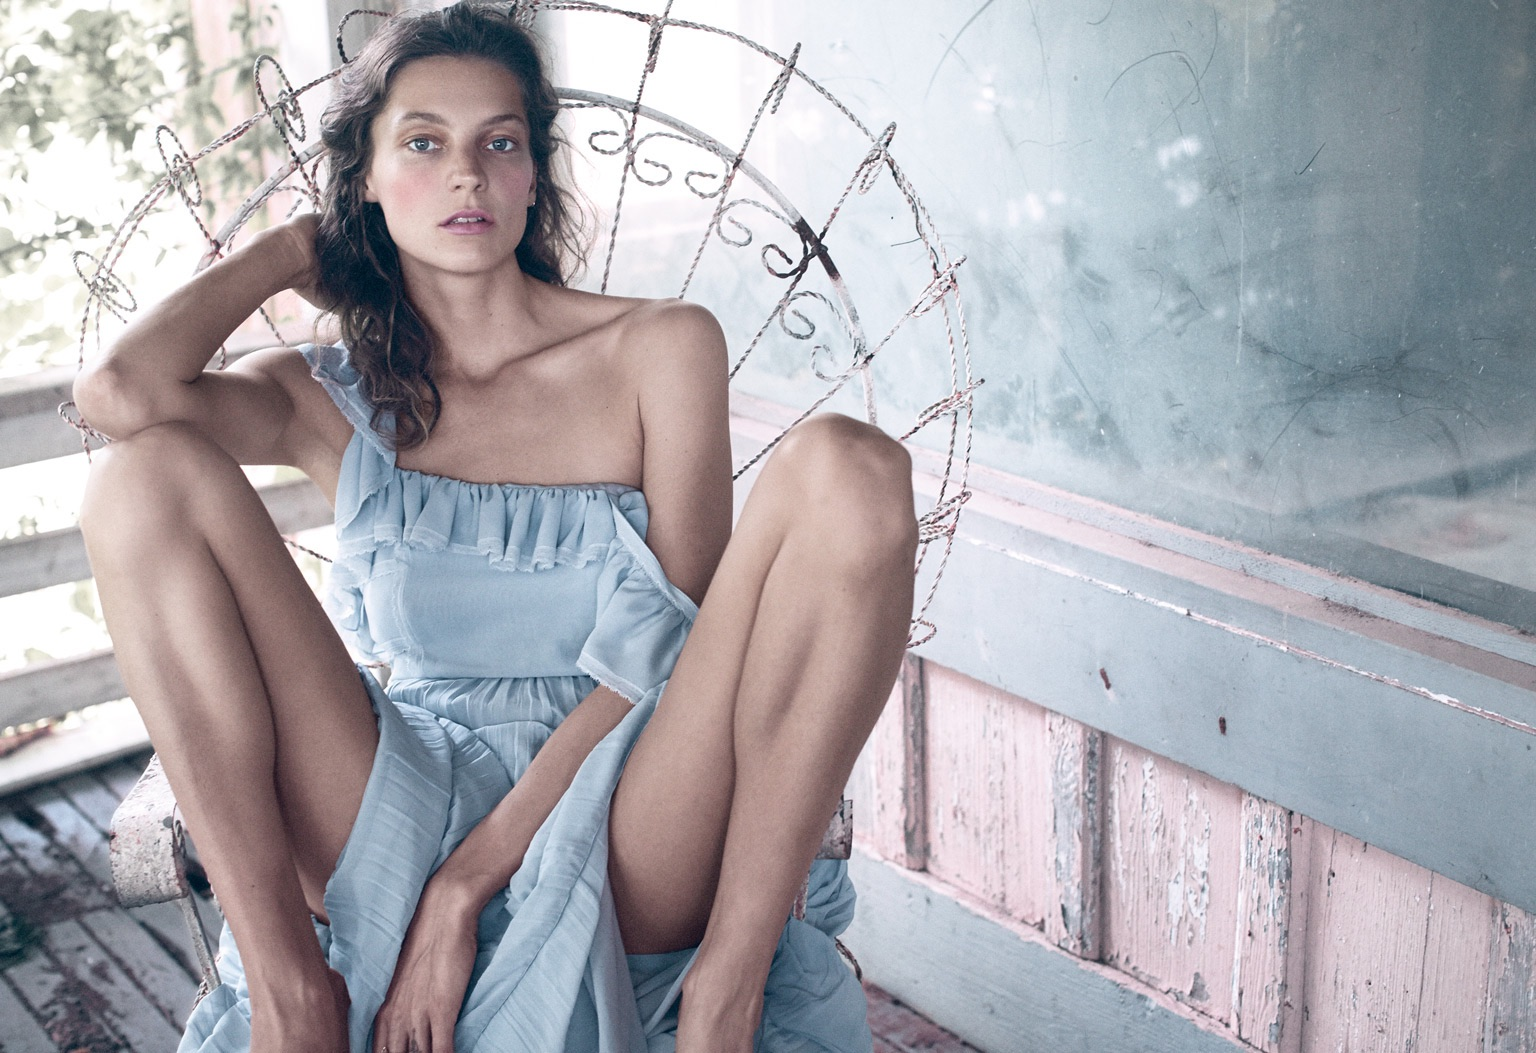 My favorite mood photo of Daria Werbowy from the Fall issue of Porter Magazine